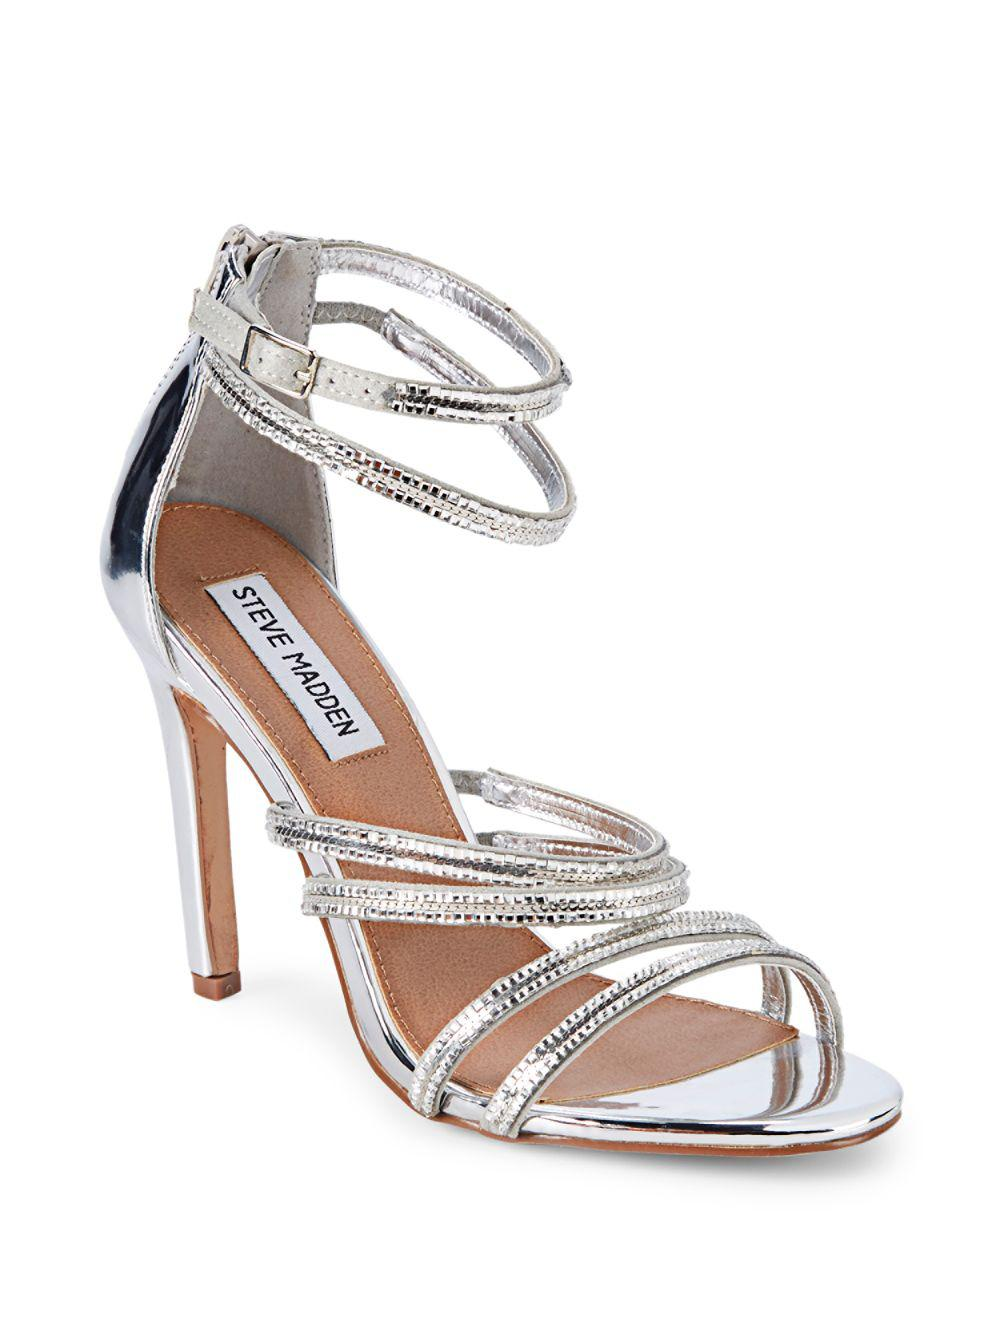 1ce3a4b2a34 Steve Madden - Metallic Faustina Embellished Strappy Sandals - Lyst. View  fullscreen